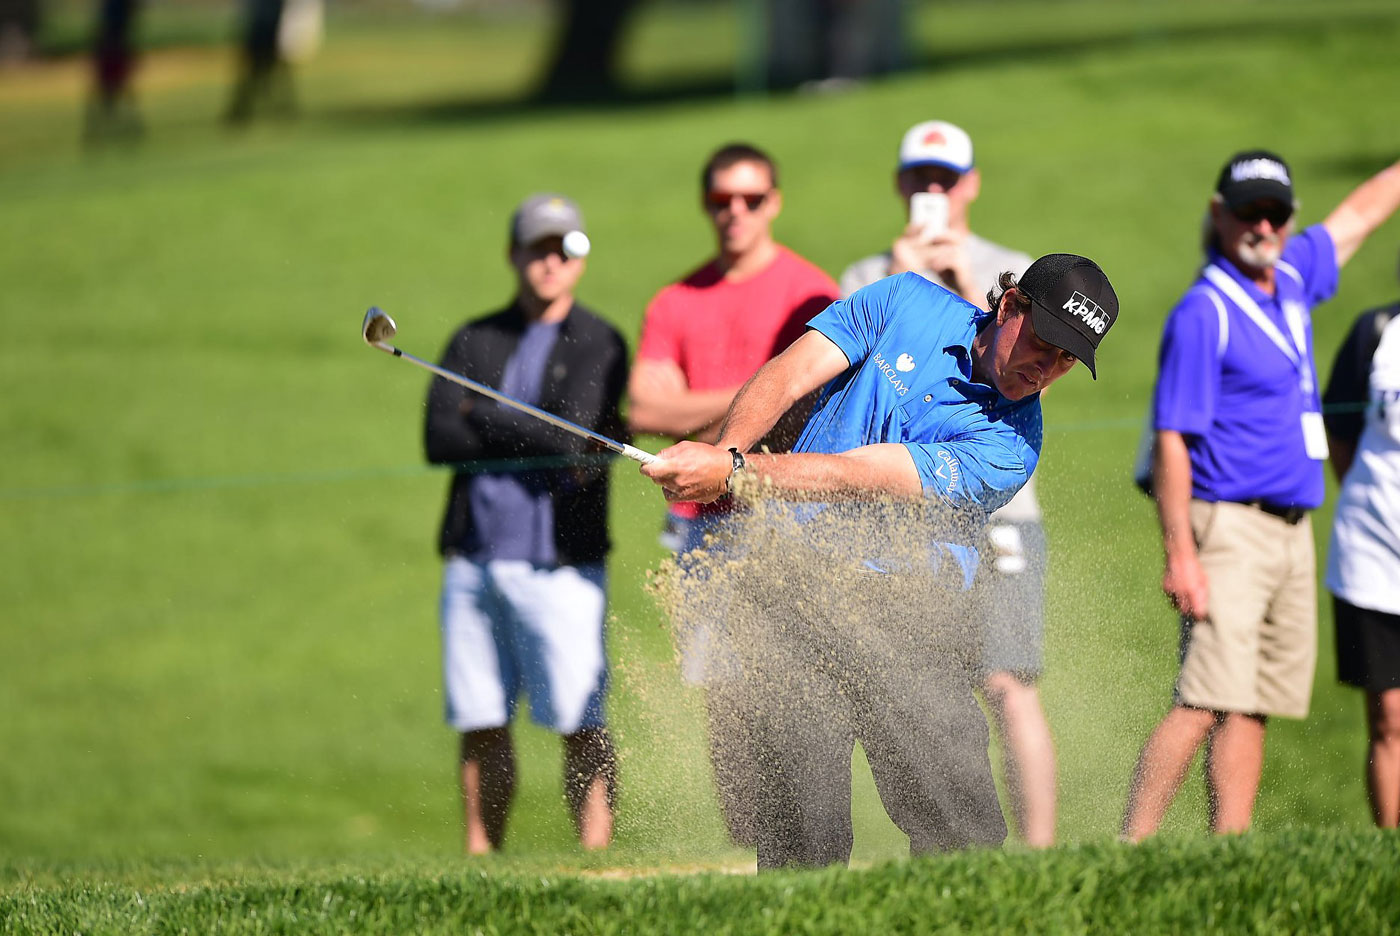 Phil Mickelson had 64 putts in two rounds, including five three-putt greens.